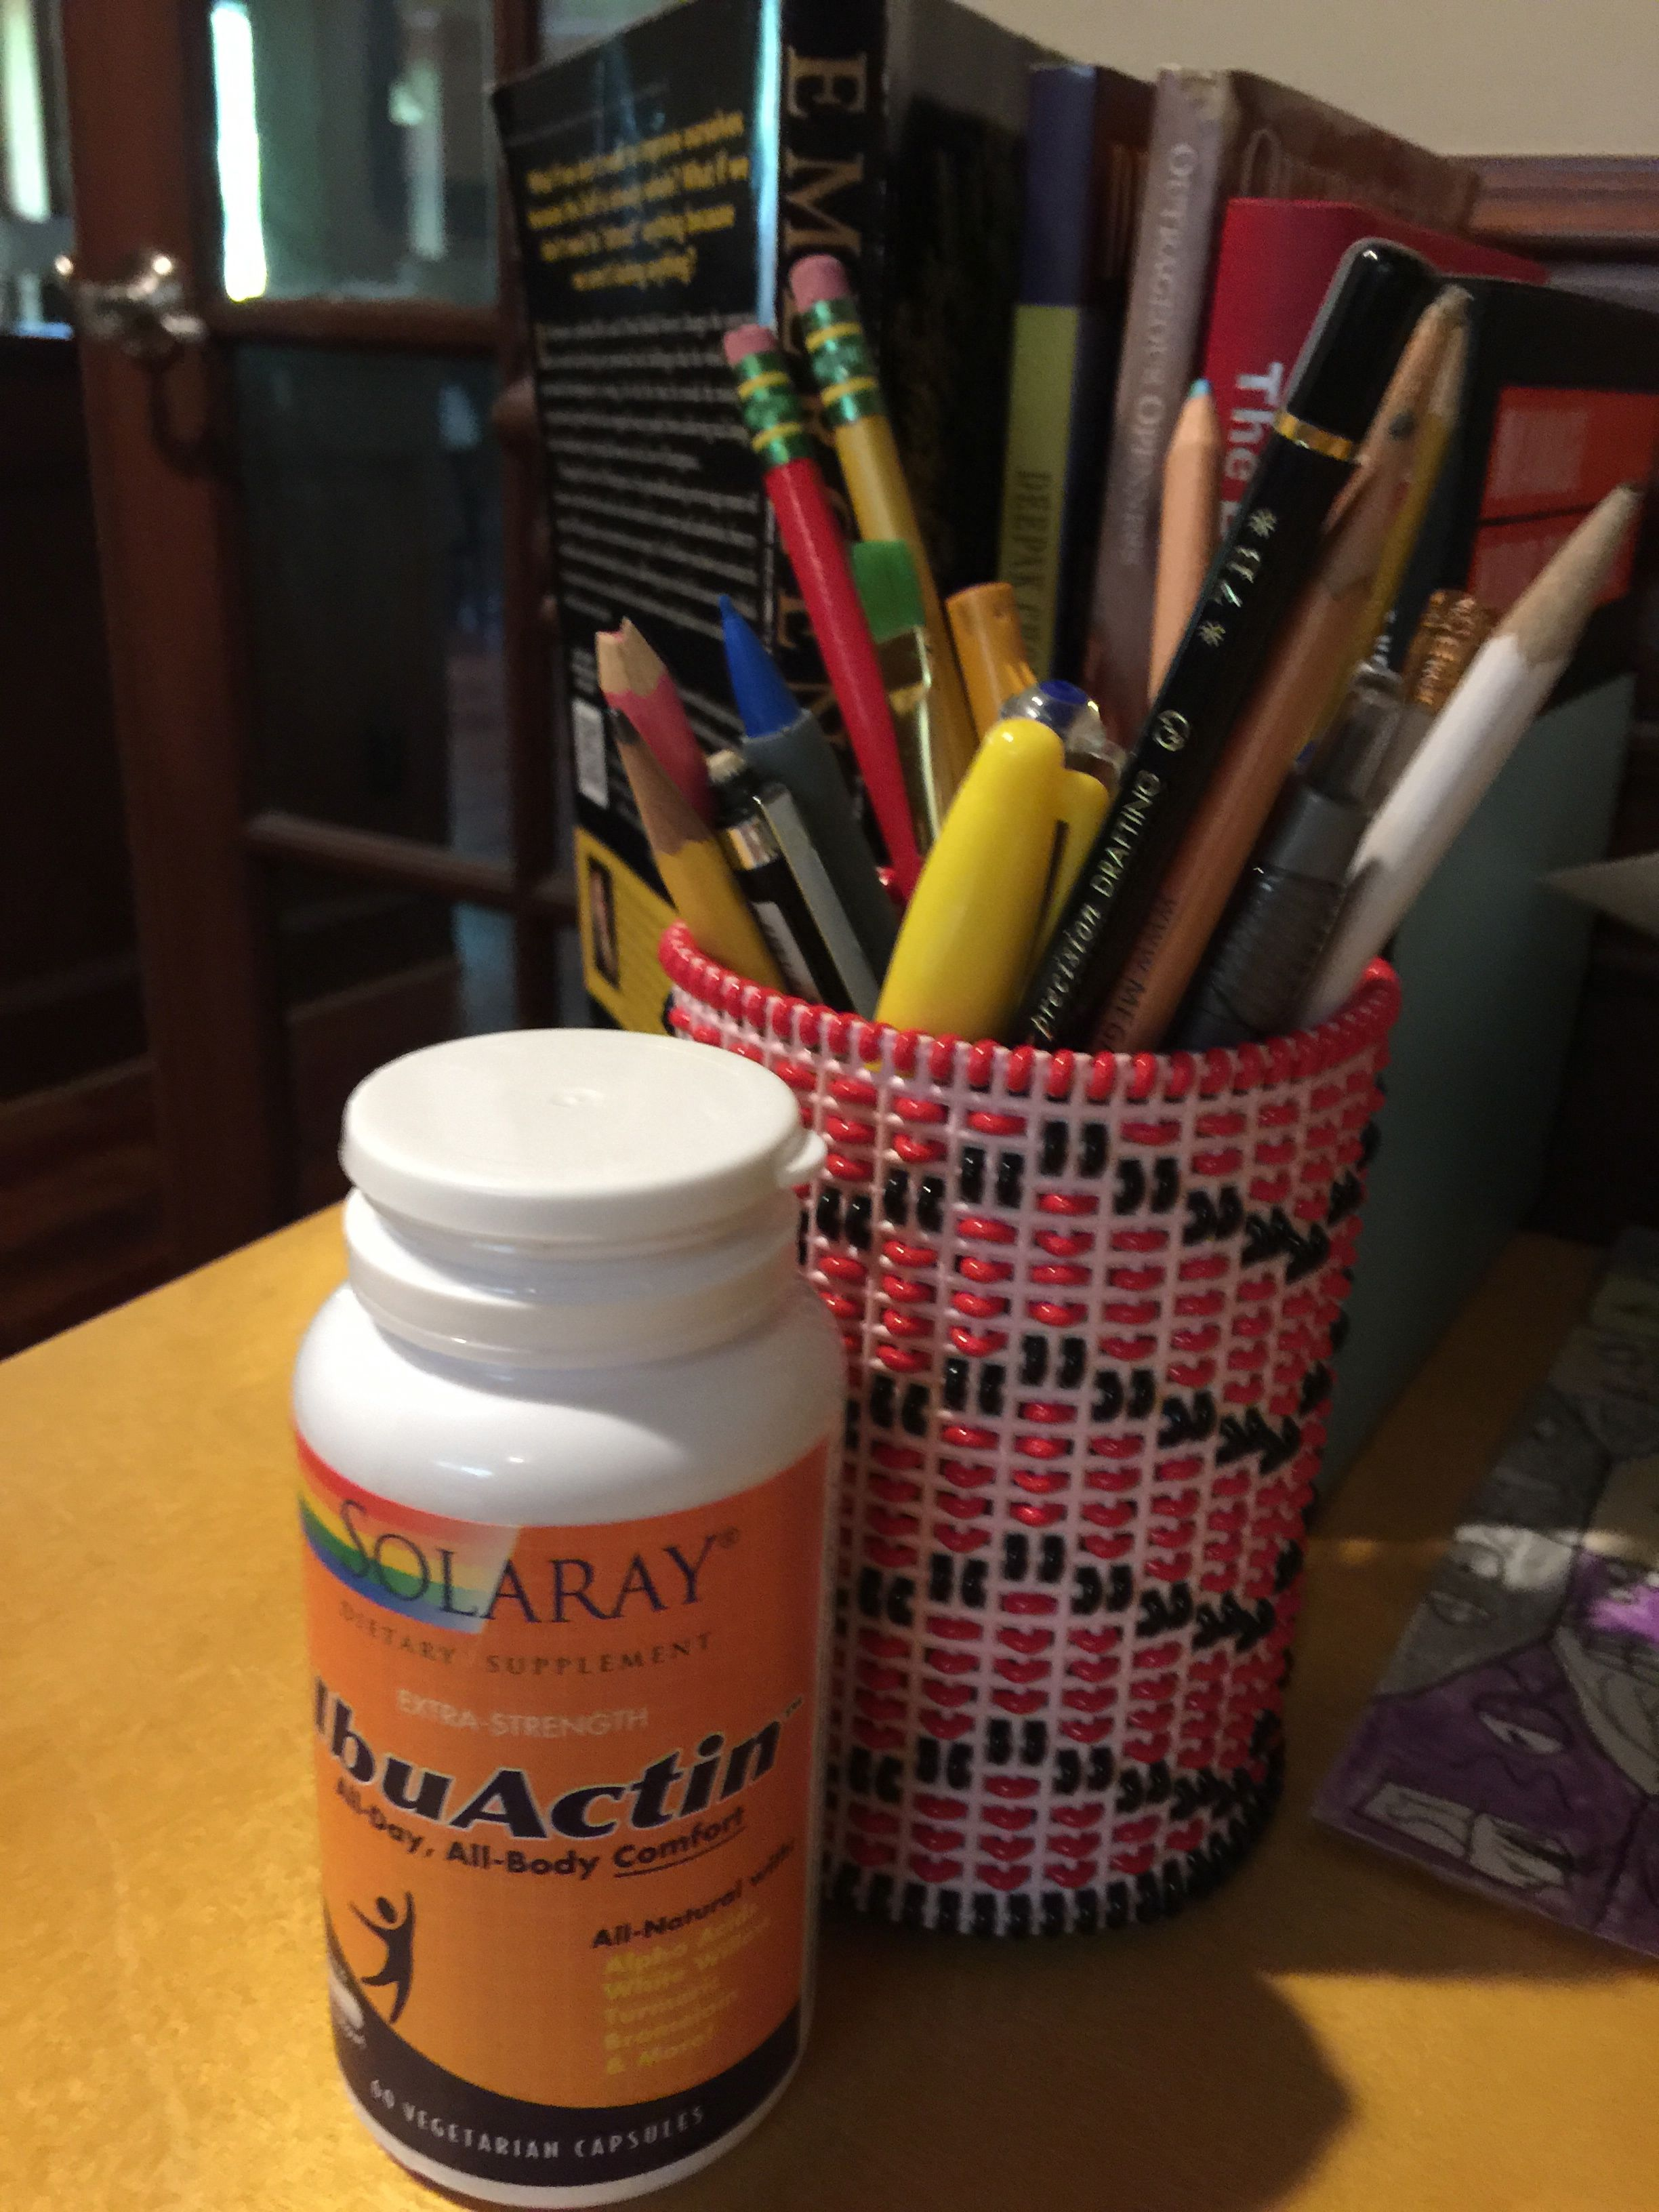 Review of Solaray IbuActin, an All Natural Inflammation and Pain Reliever